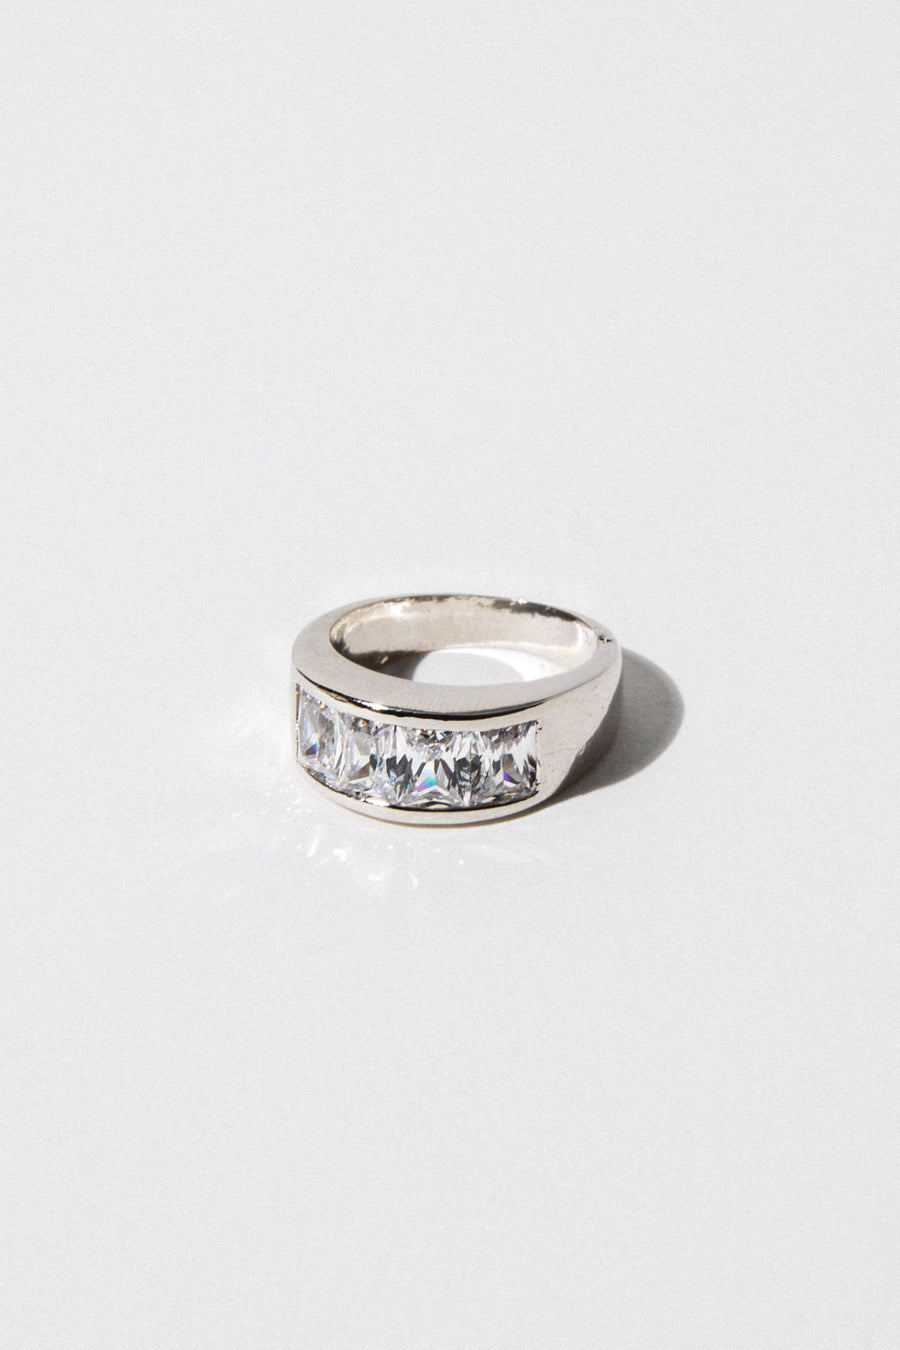 Sparrow Jewelry US 6 / Rhodium The Gaudy Ring